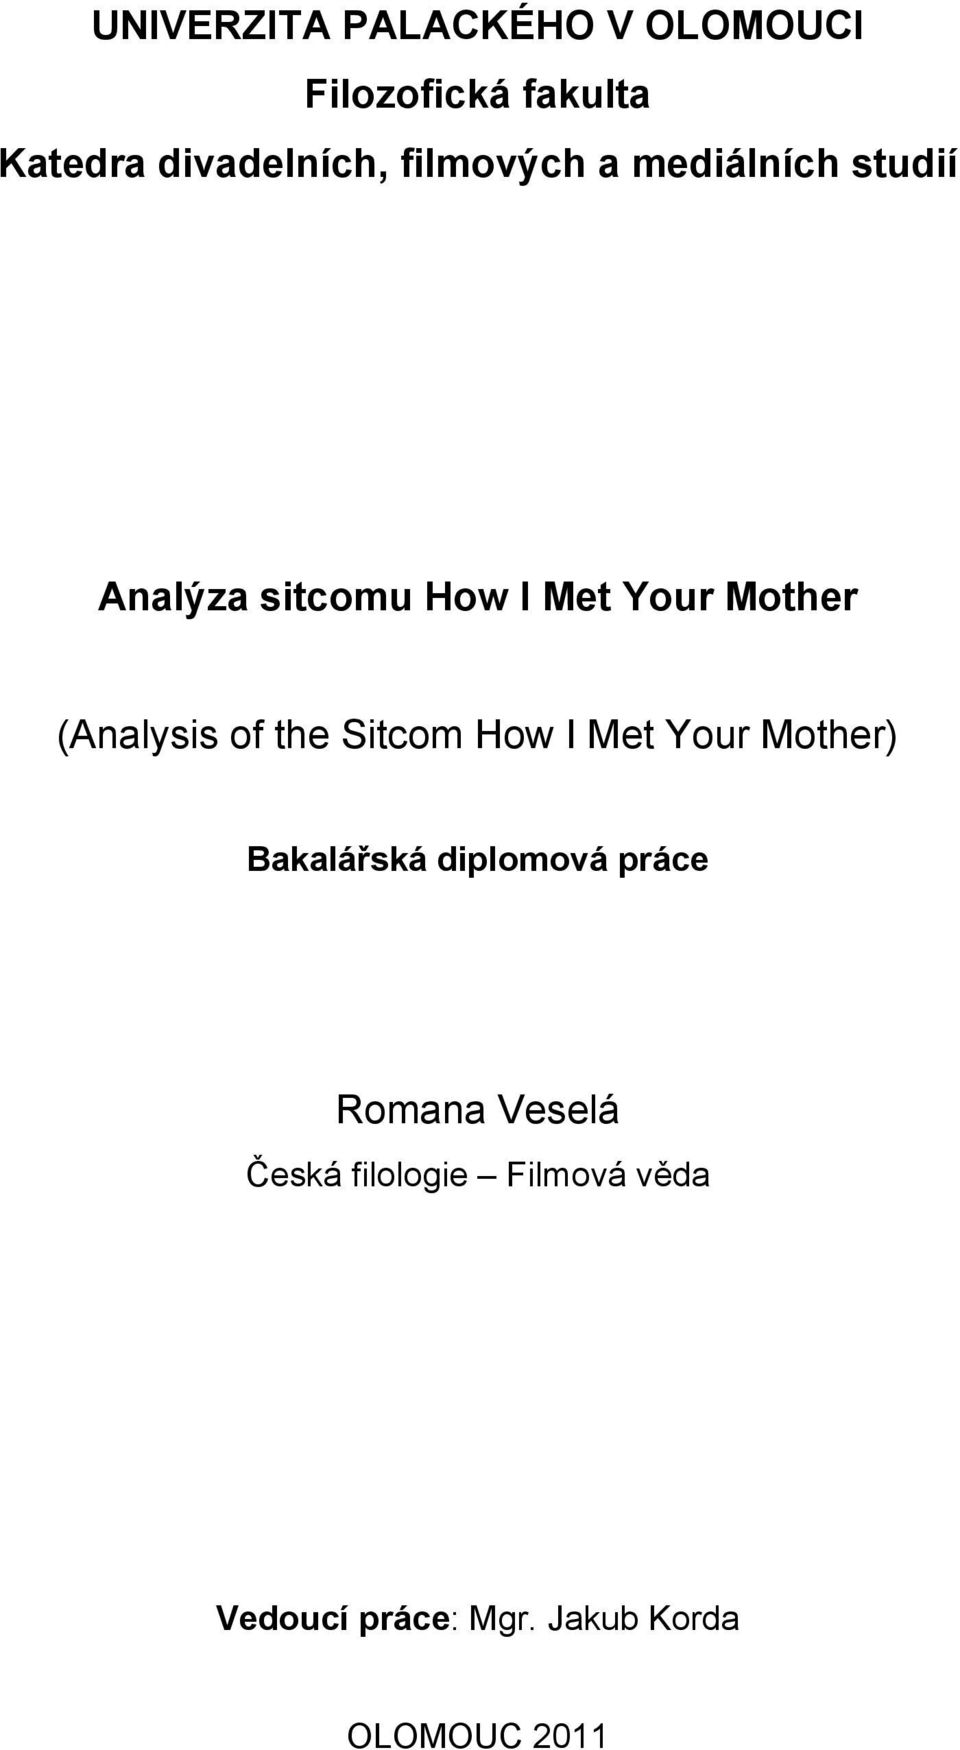 (Analysis of the Sitcom How I Met Your Mother) Bakalářská diplomová práce